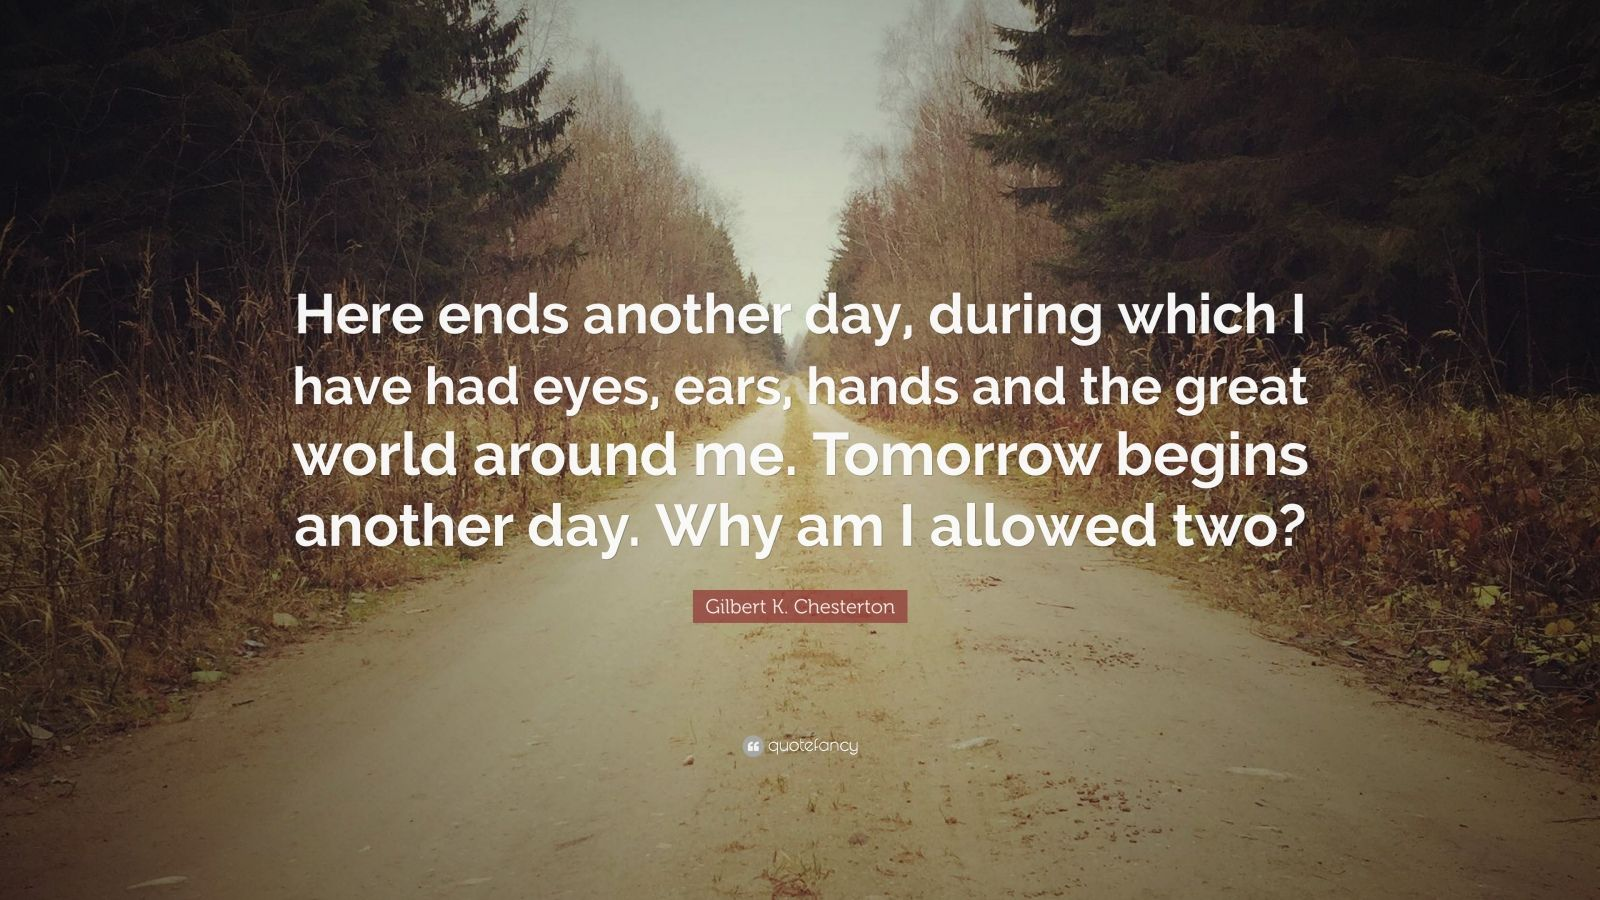 """Gilbert K. Chesterton Quote: """"Here ends another day, during which I have had eyes, ears, hands and the great world around me. Tomorrow begins another day. Why am I allowed two?"""""""